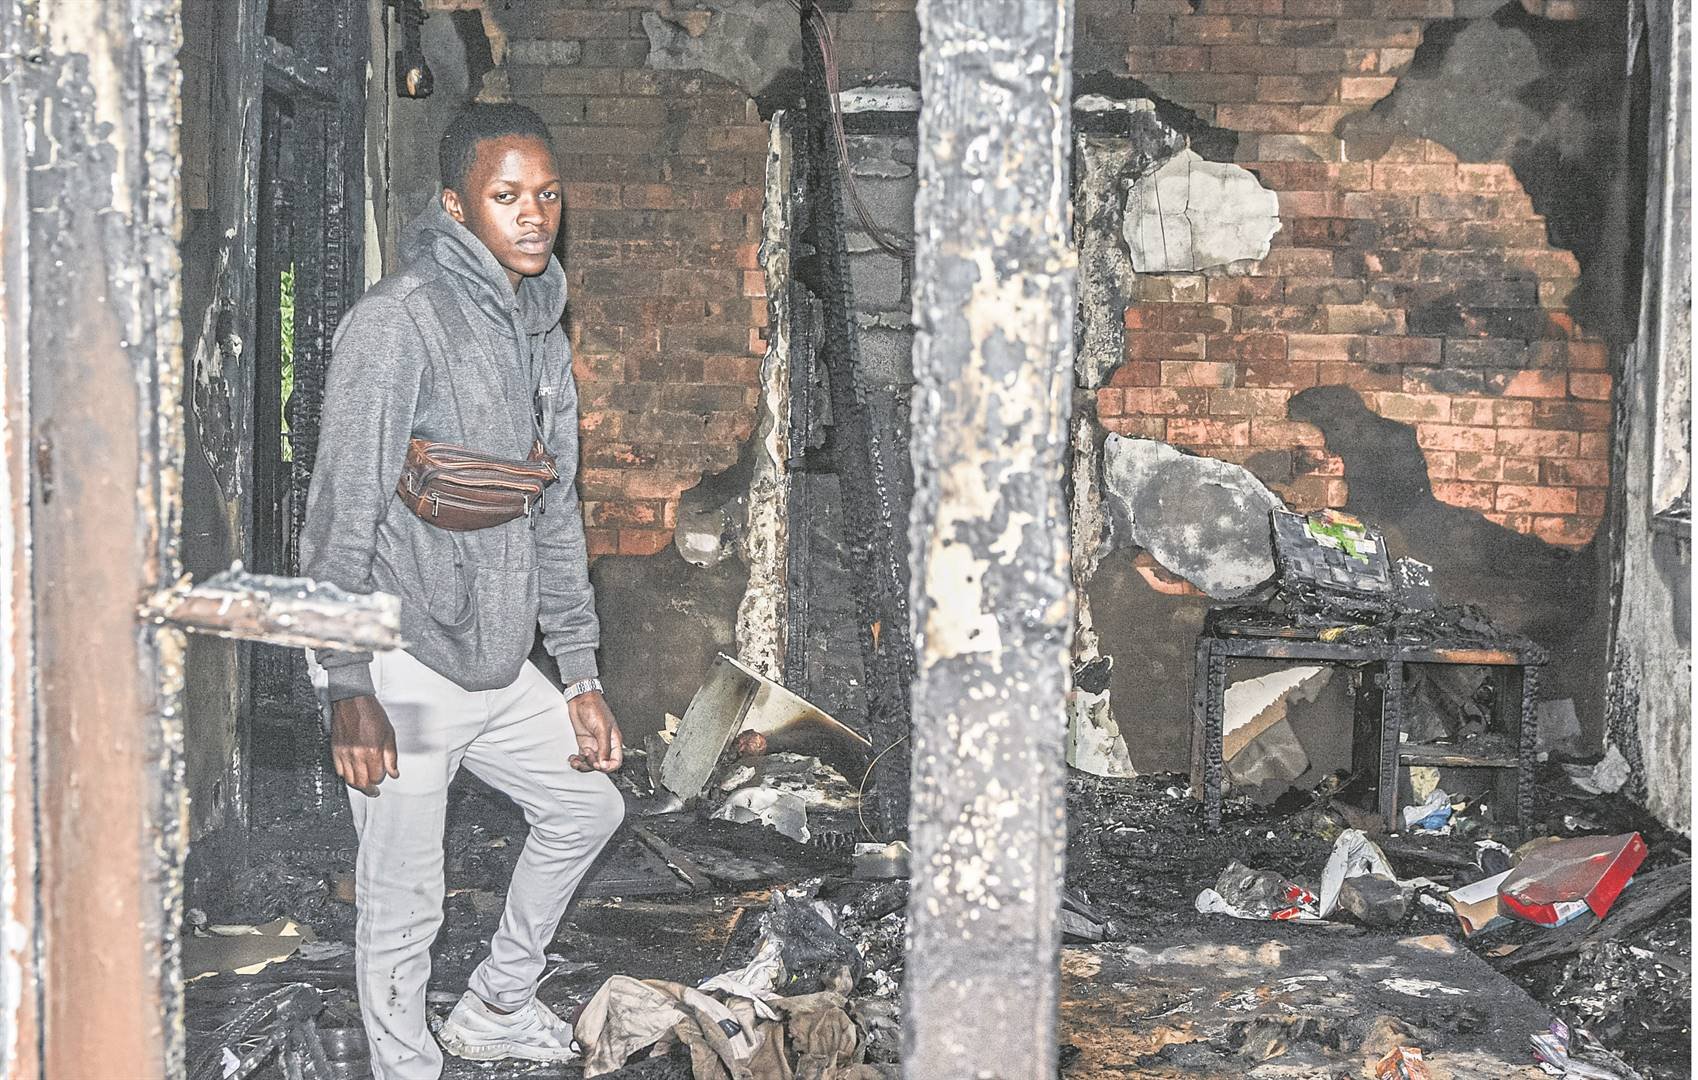 Sihle Nzimande lost all his belongings in Friday's fire in the CBD.